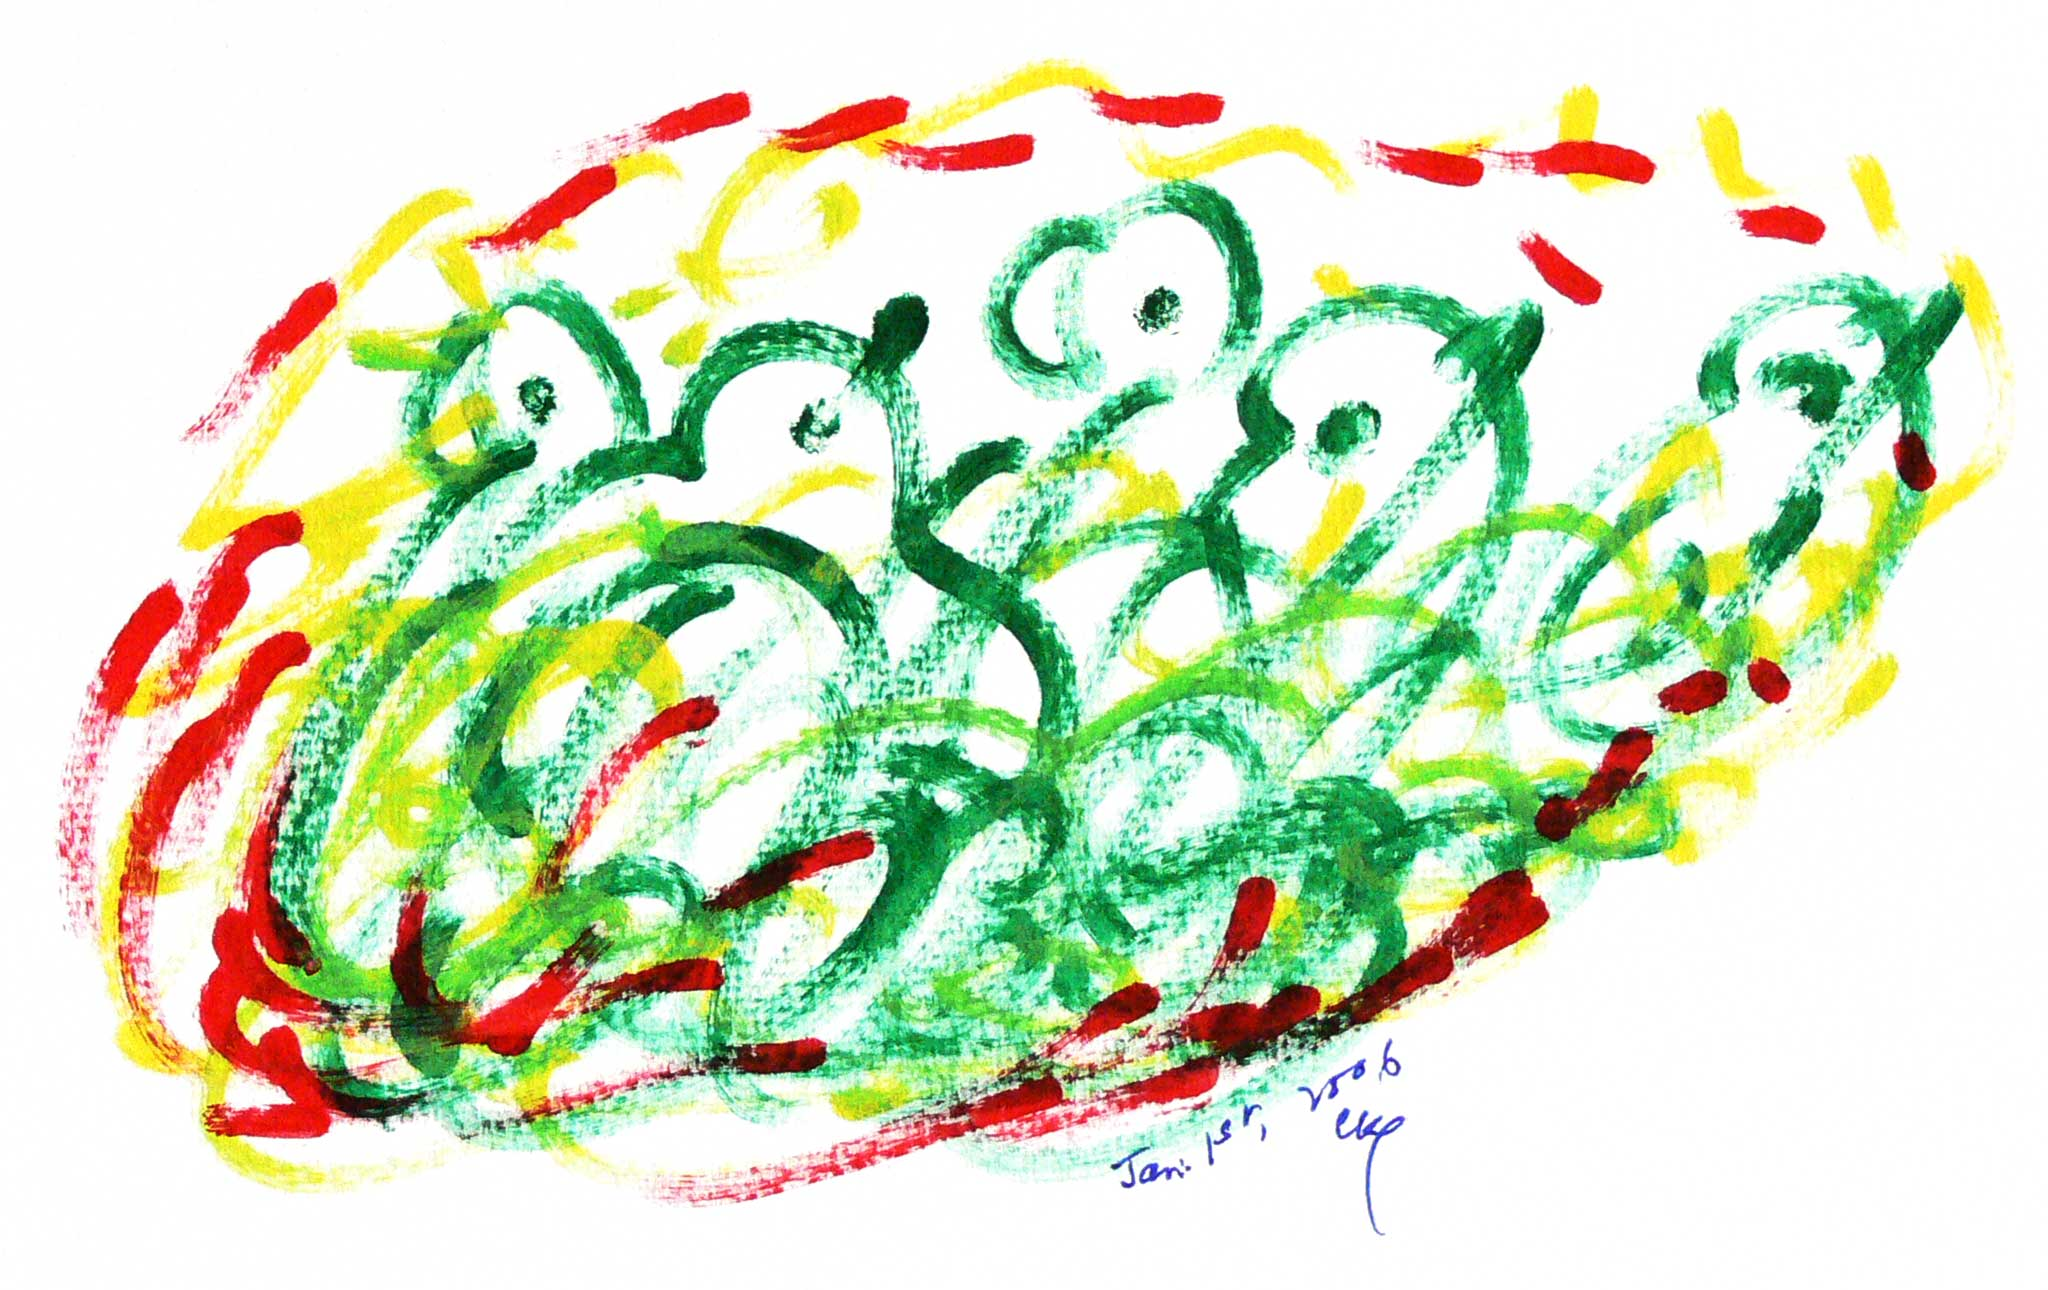 _Bird-Drawing-by-Sri-Chinmoy-1-1-2006-5